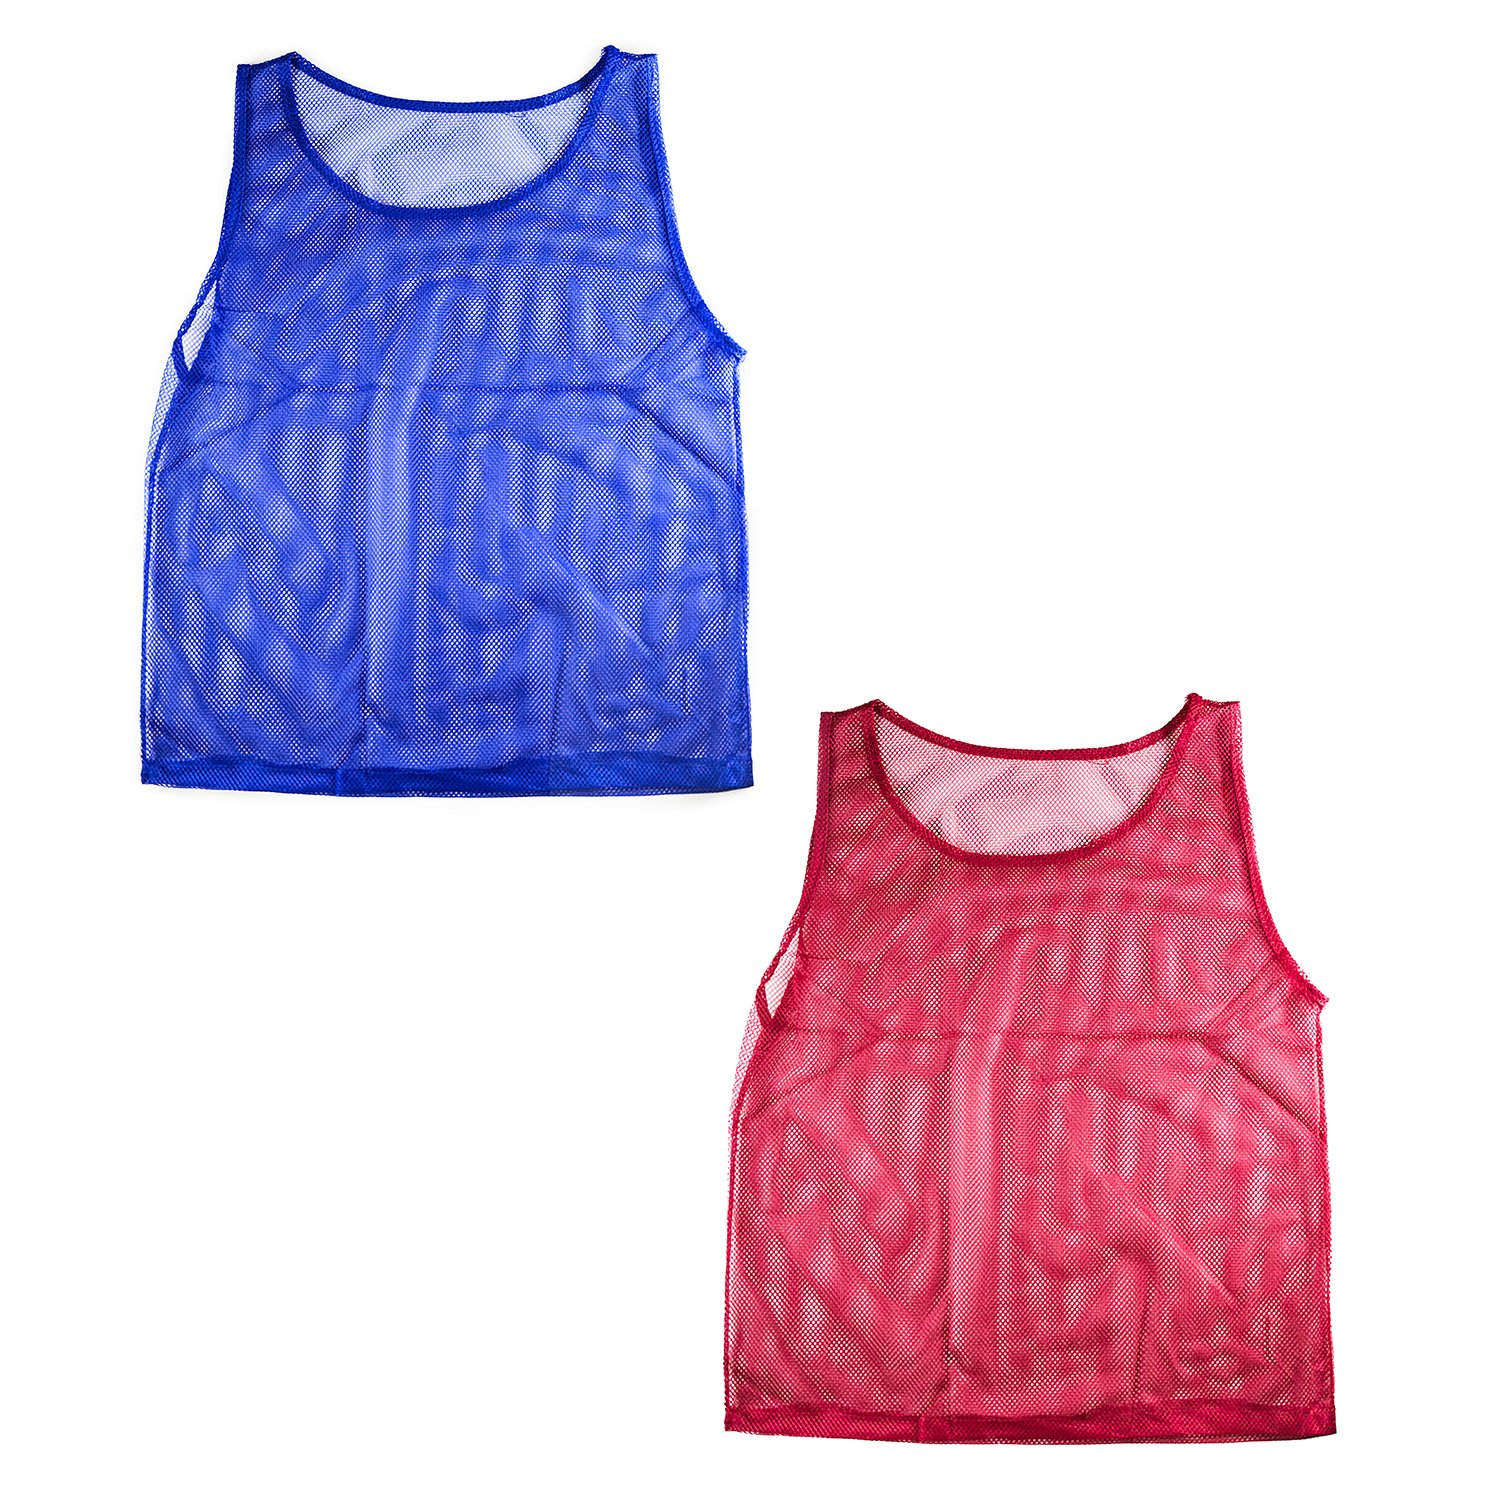 Nylon Mesh Scrimmage Team Practice Vests Pinnies Jerseys for Children Youth Sports Basketball, Soccer, Football, Volleyball (12 Jerseys) by Super Z Outlet (Image #2)